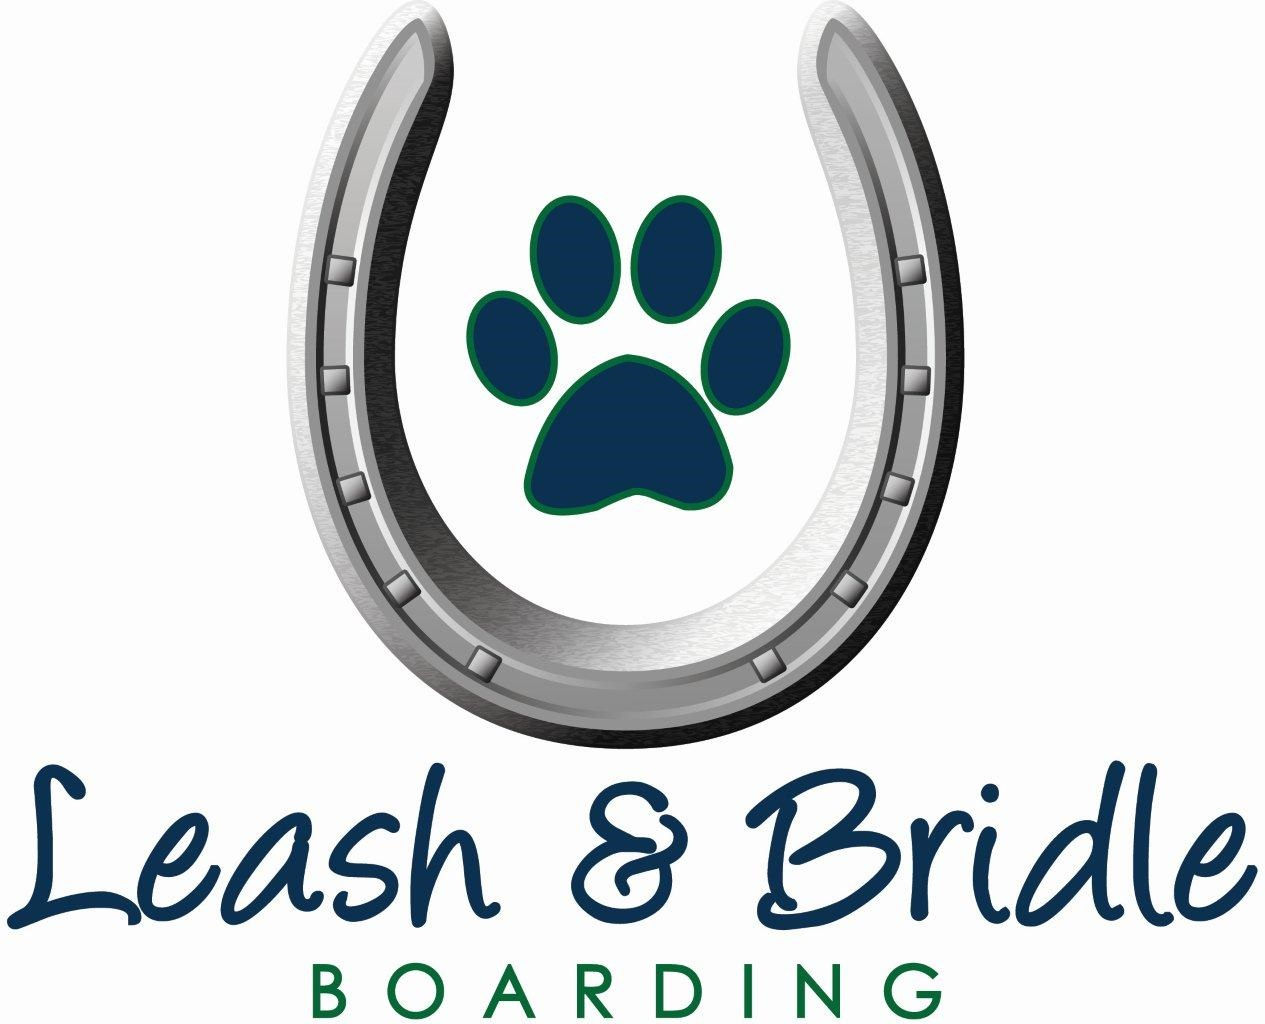 Leash & Bridle Boarding